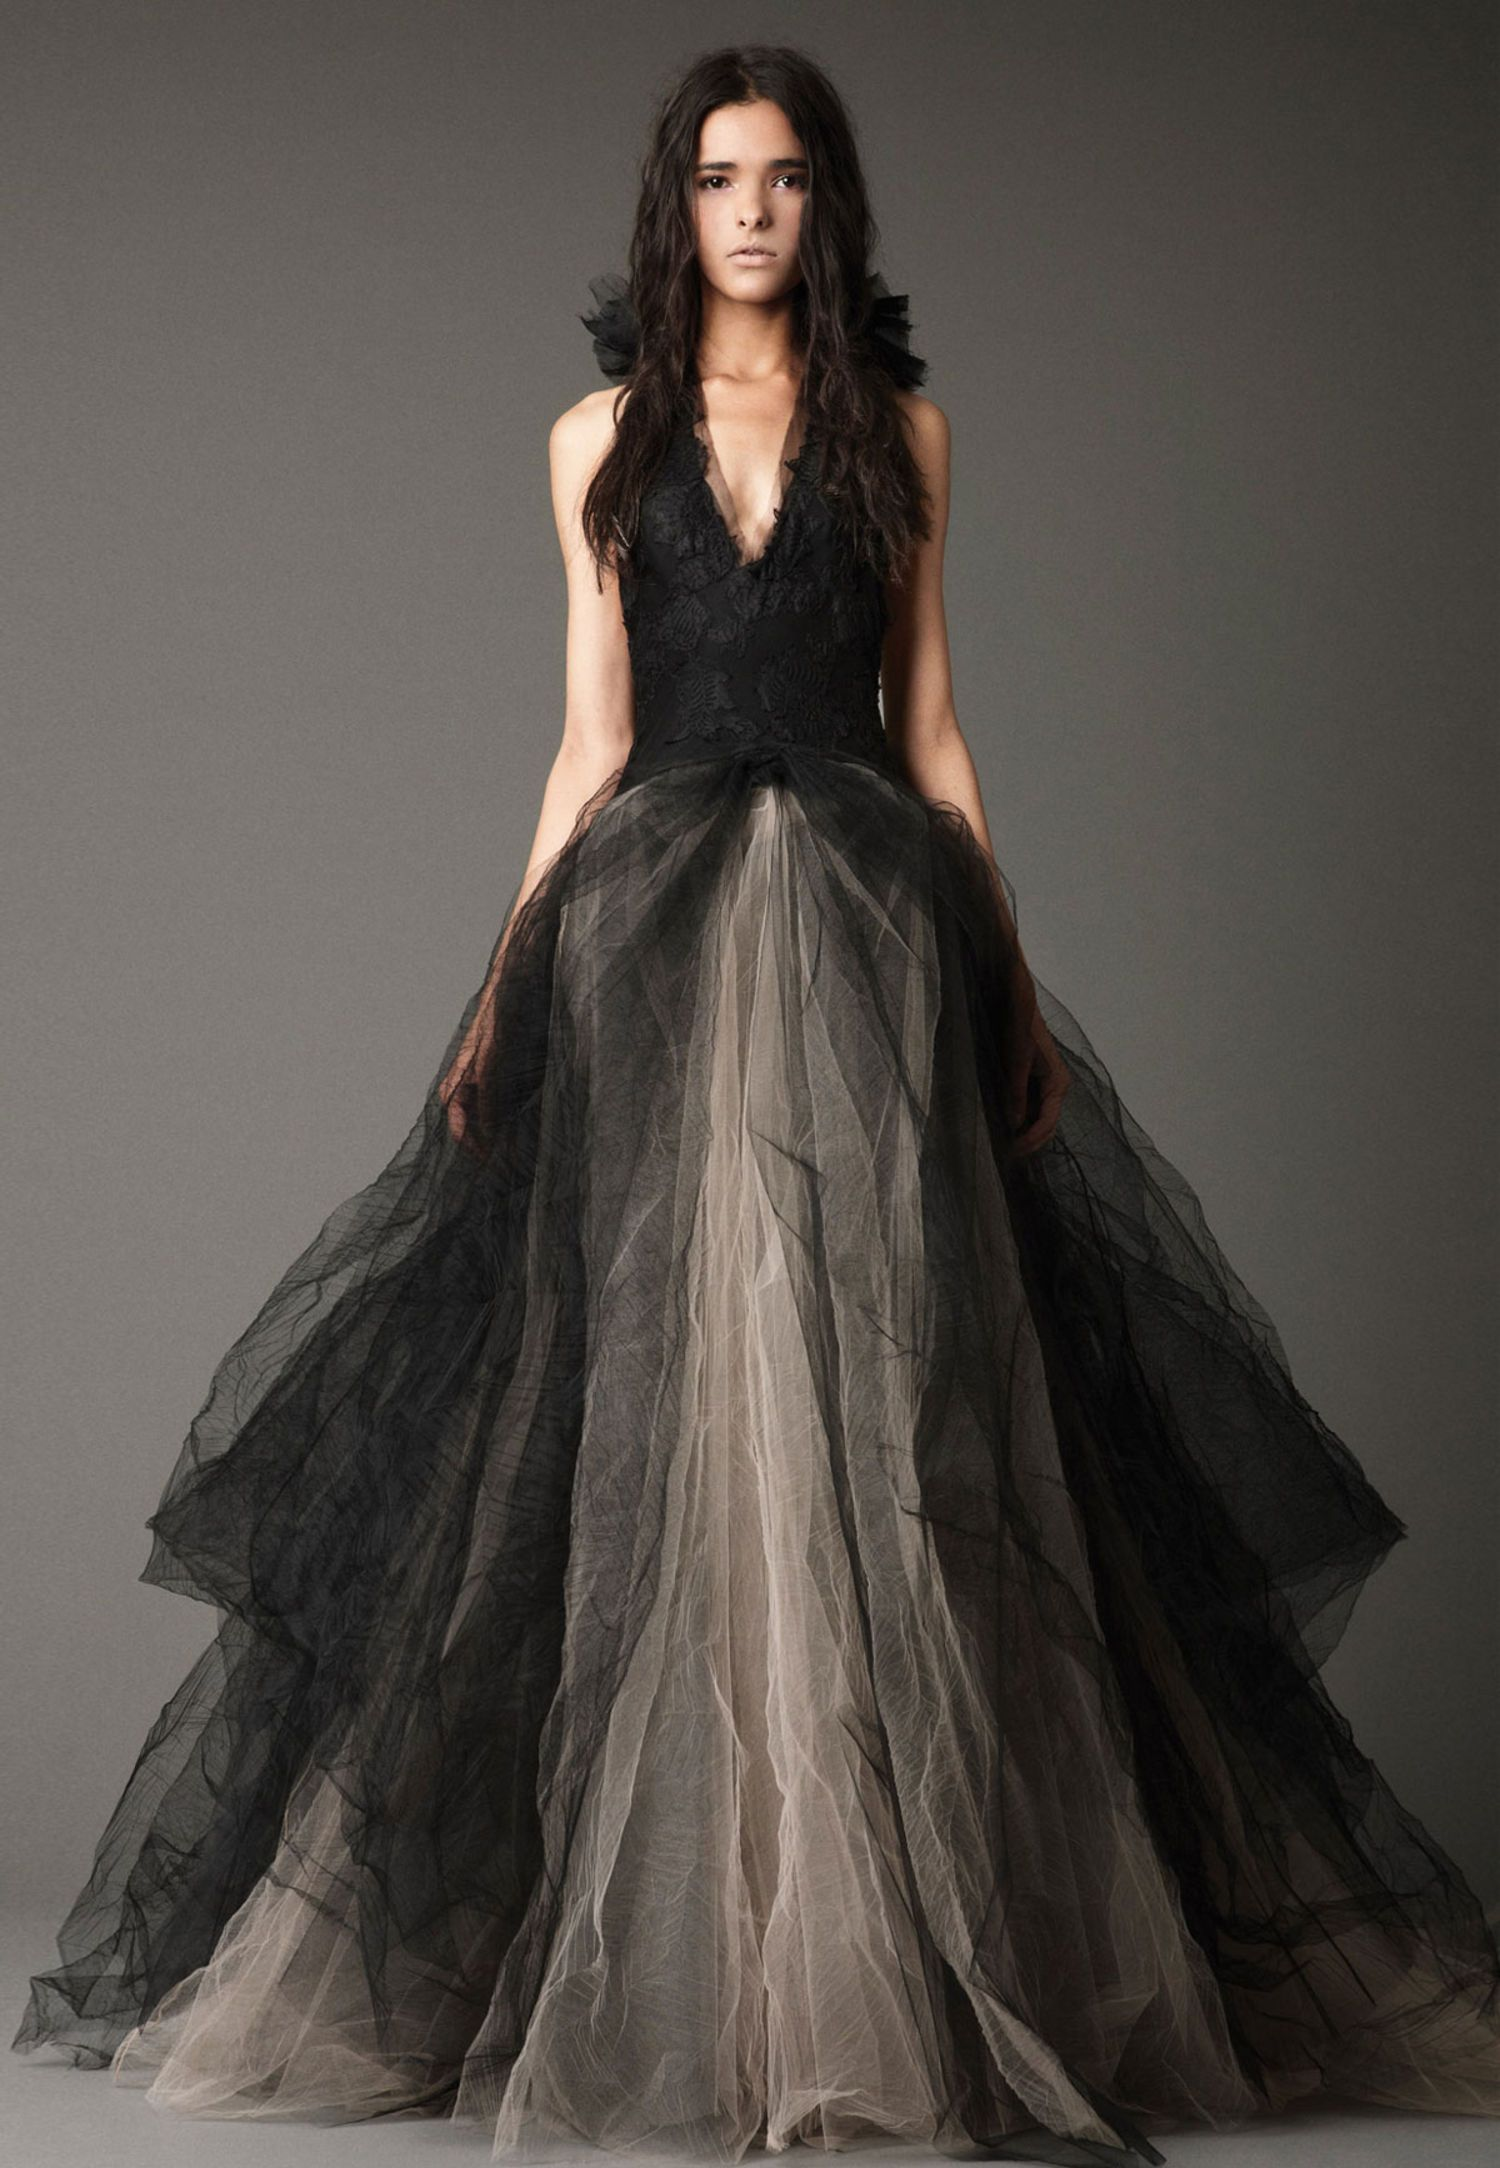 Red and black wedding dress  Black Wedding Dress  Vera Wang only red instead of white This one